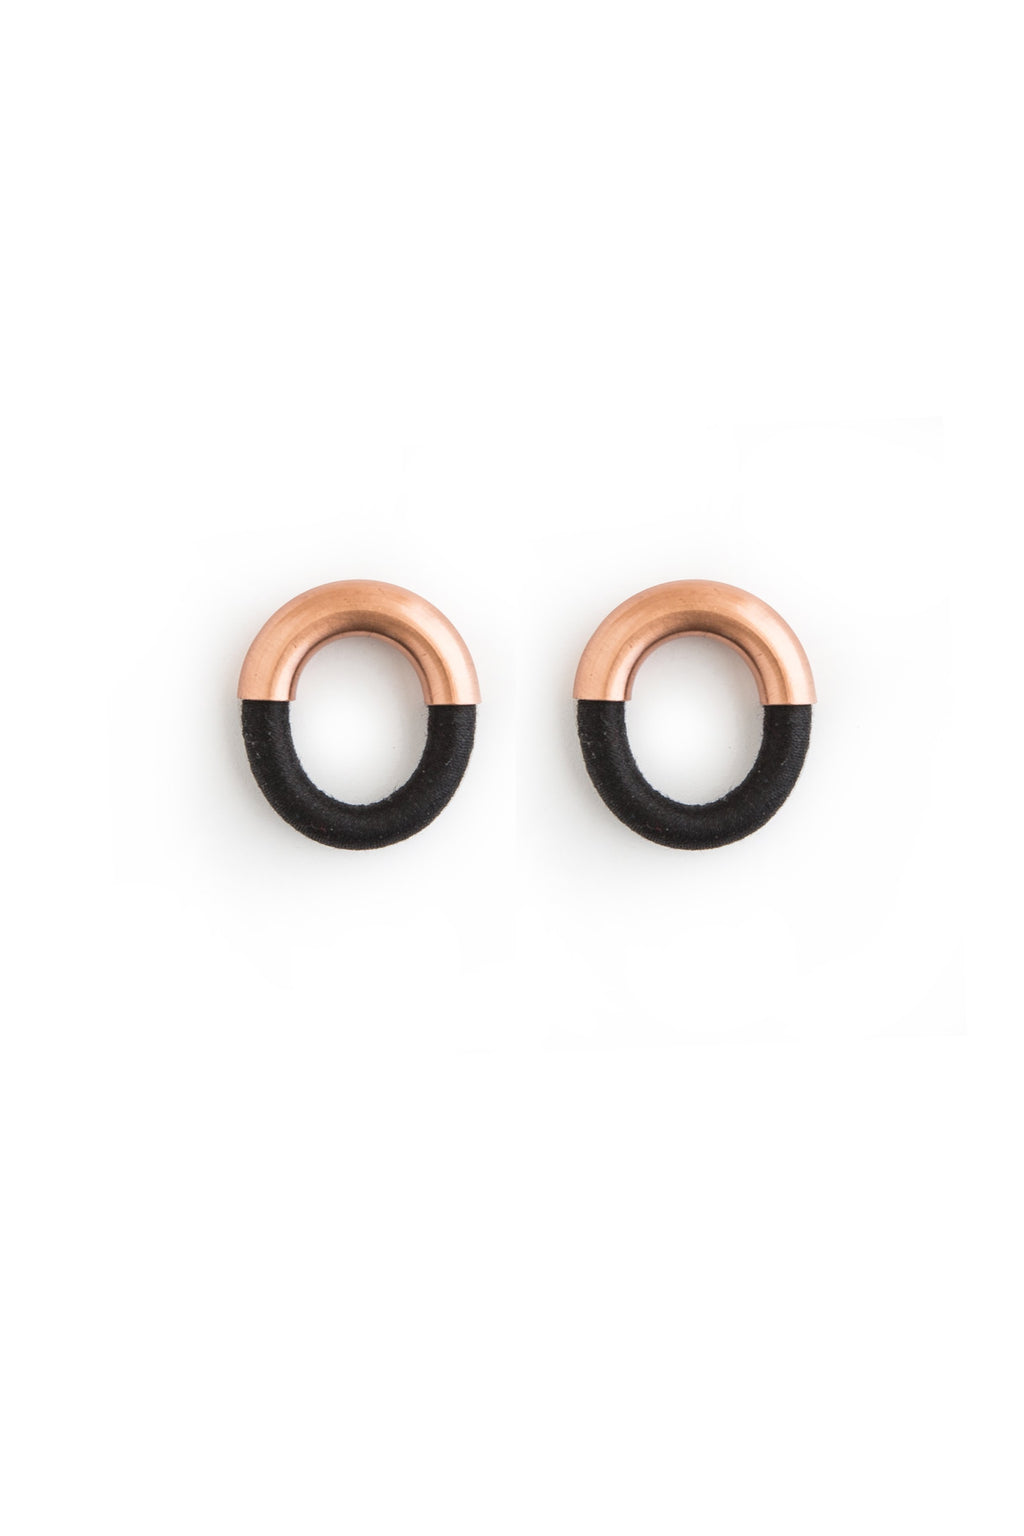 OKO earrings N°3